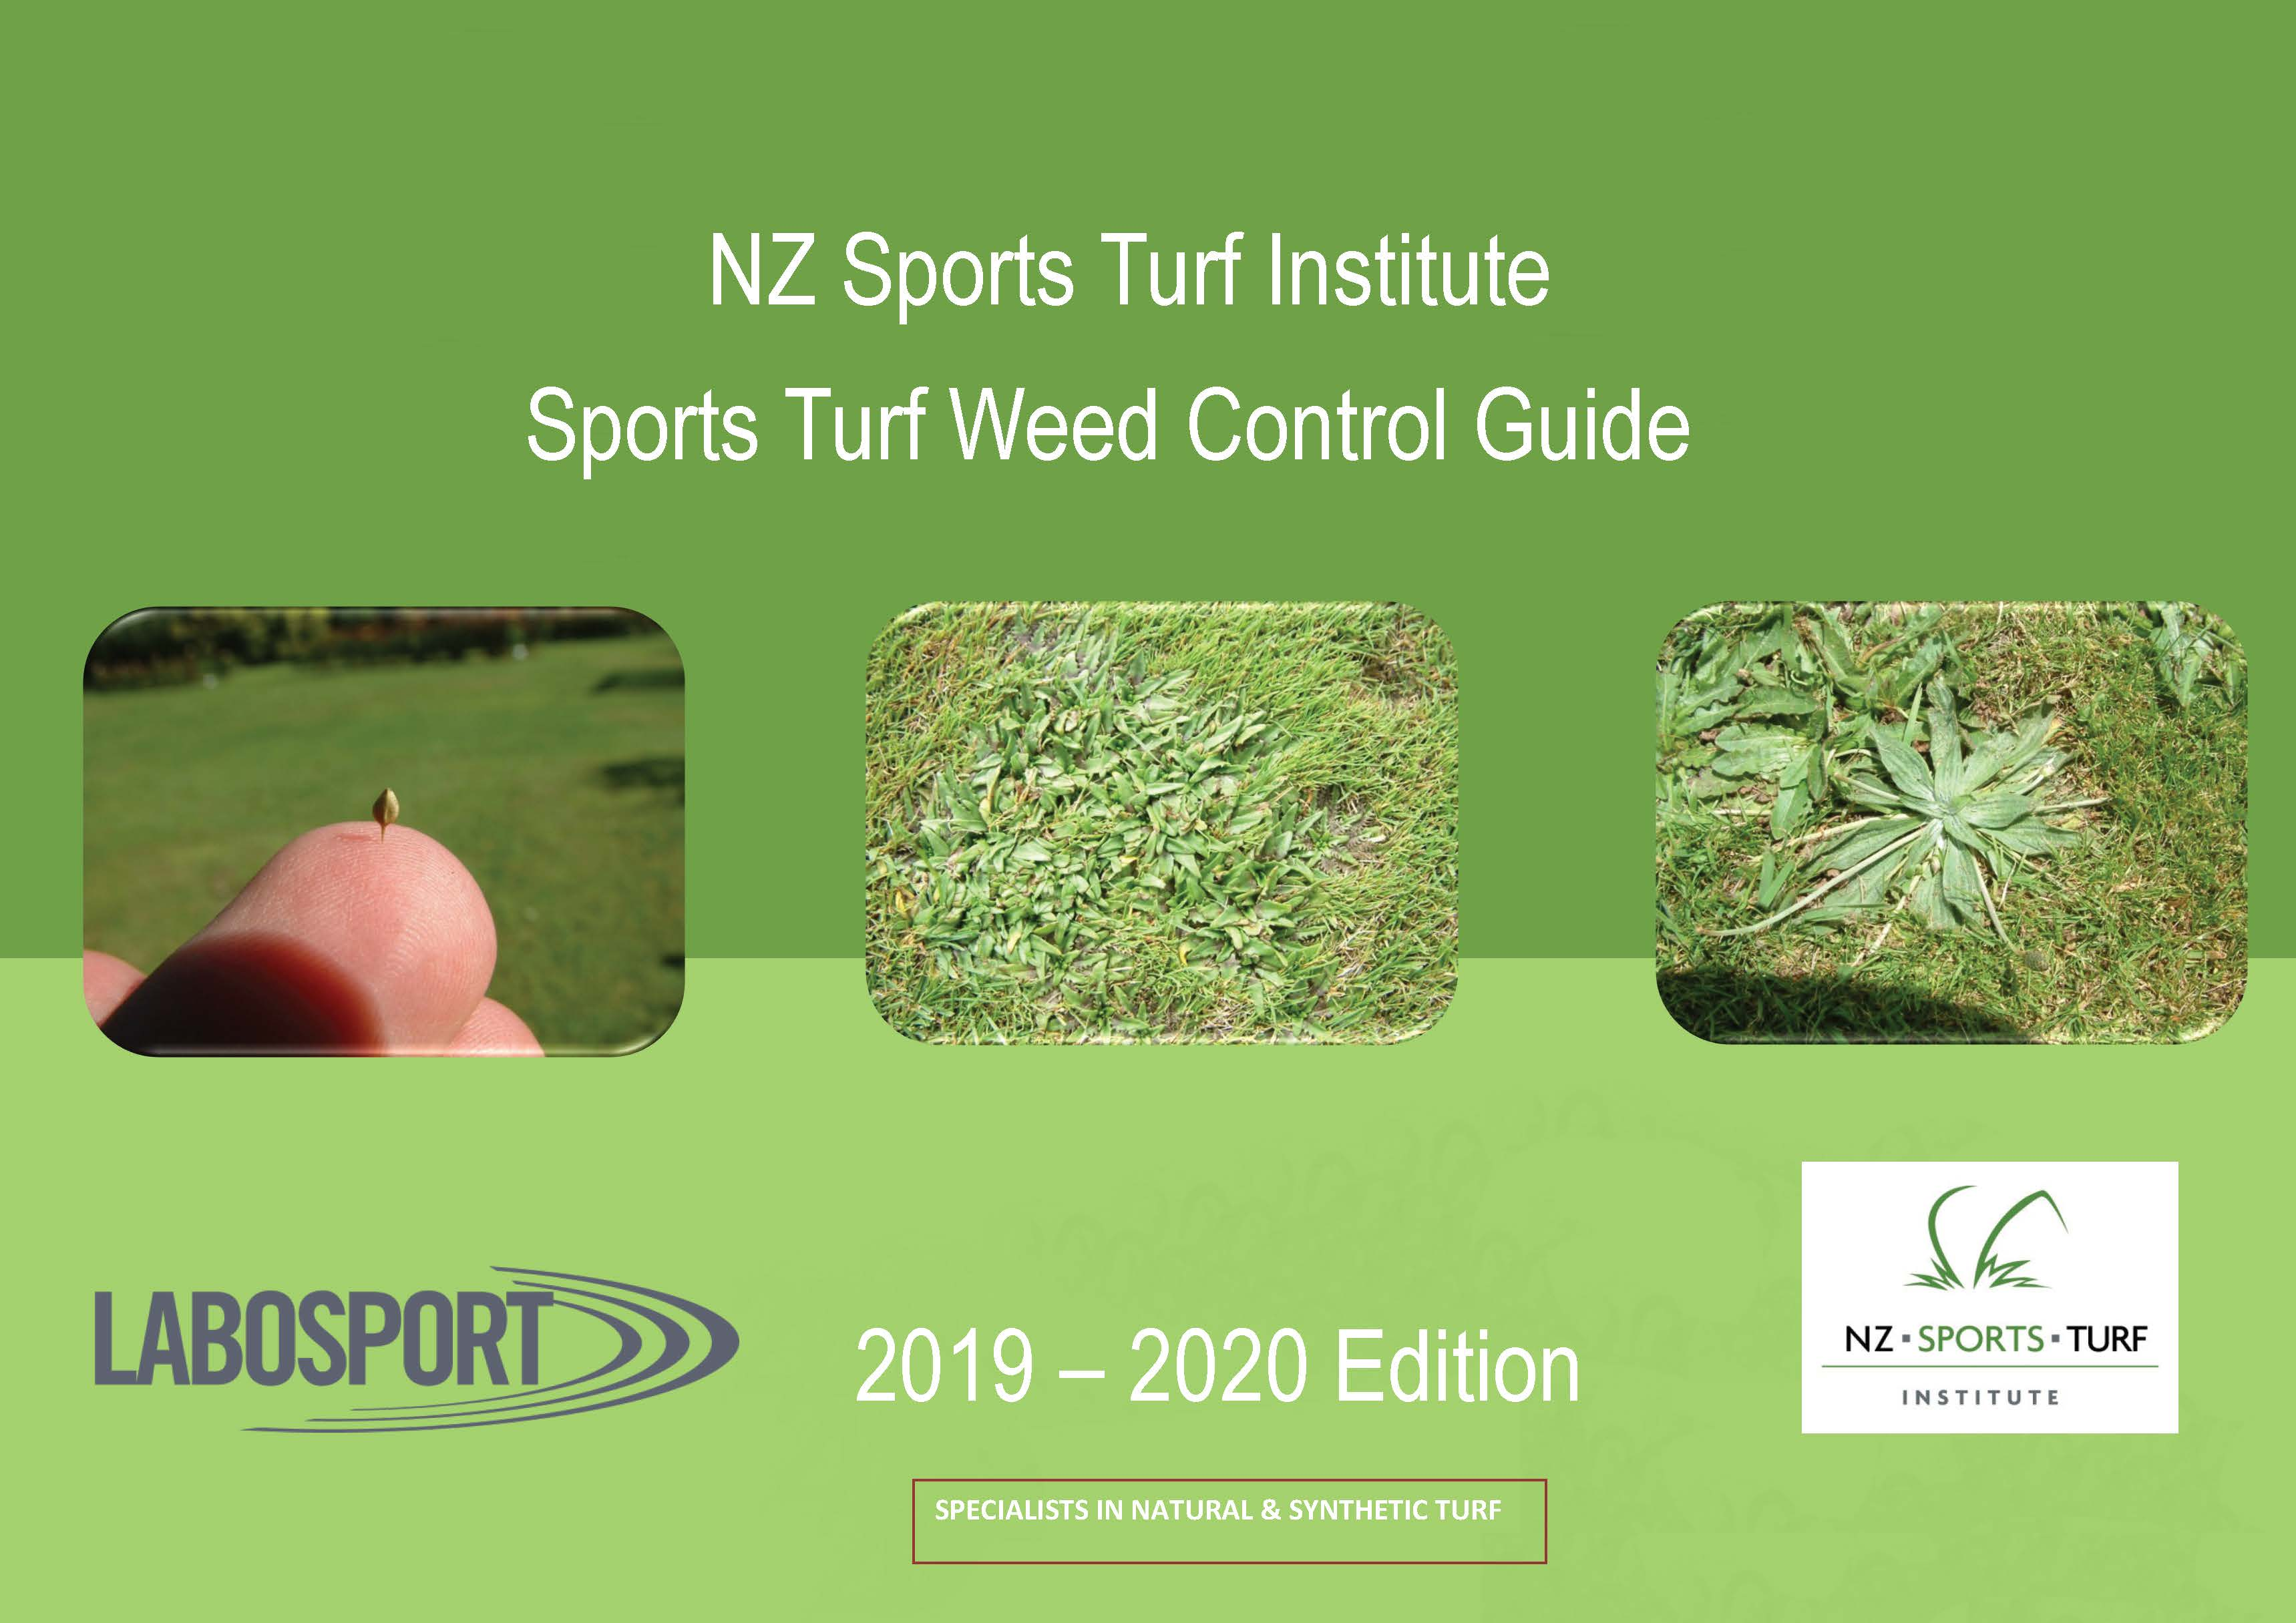 Sports Turf Weed Control Guide